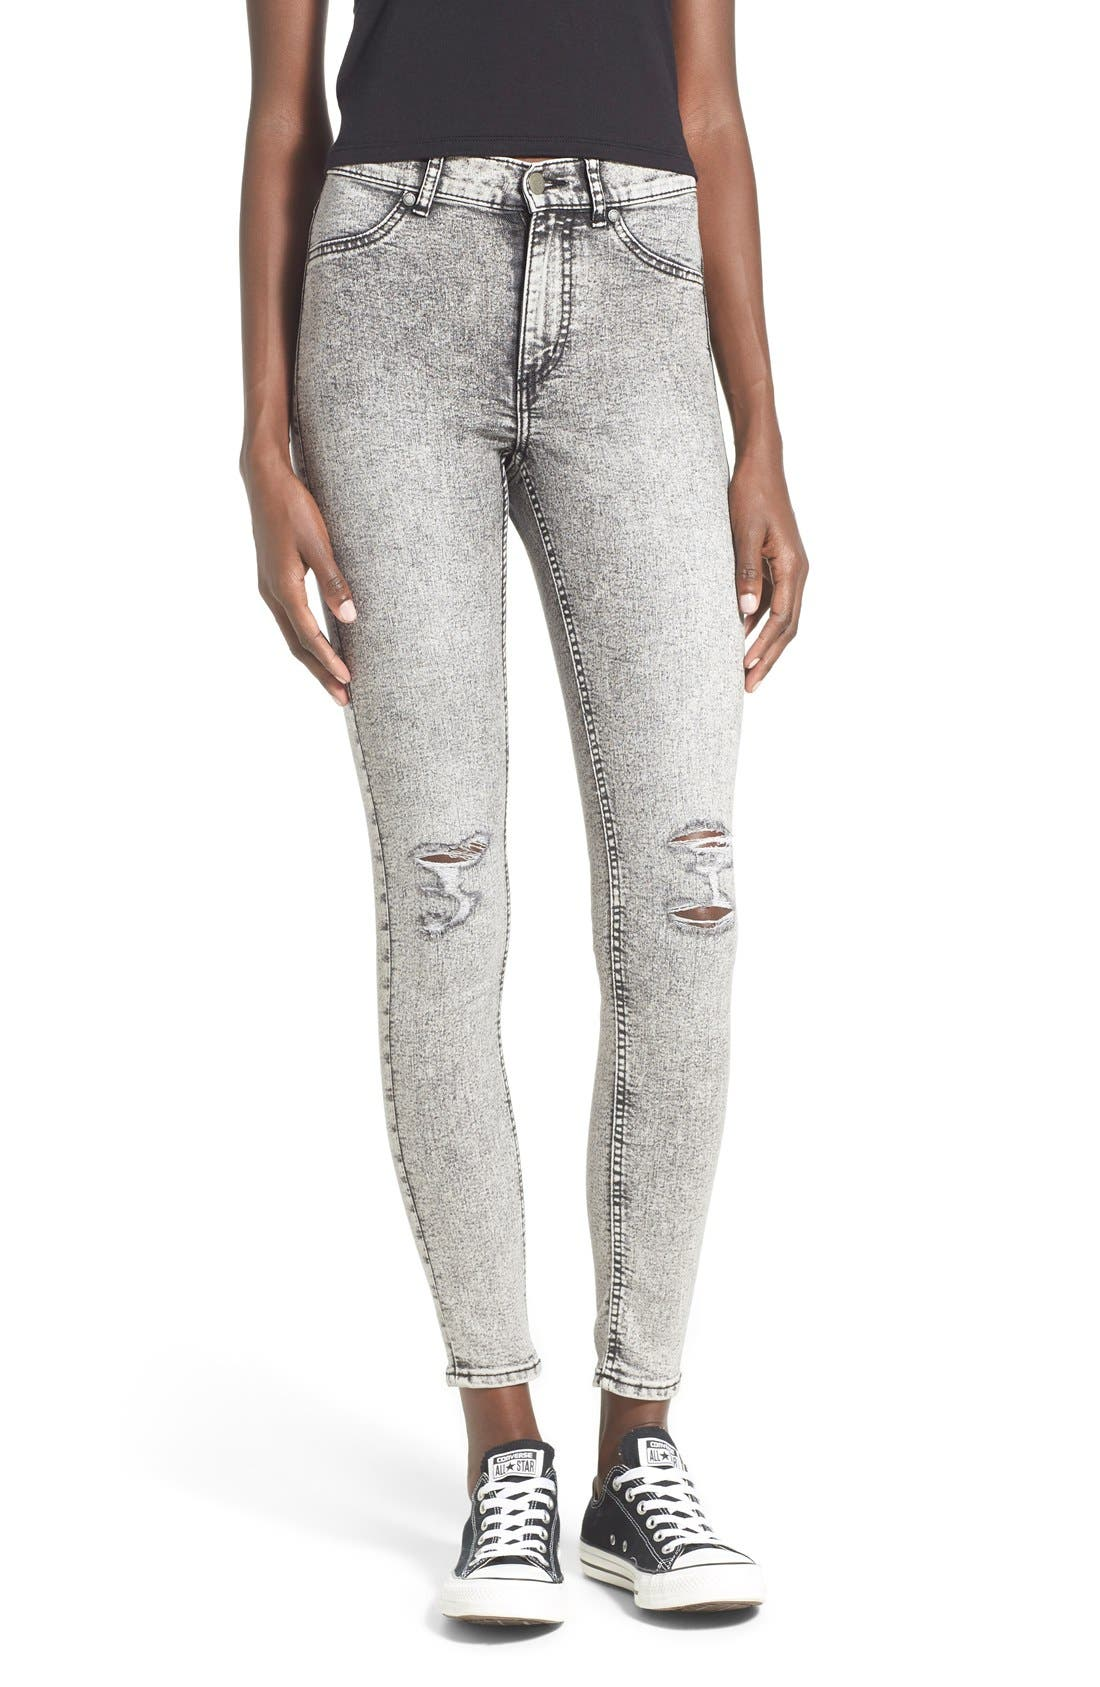 Main Image - Cheap Monday 'High Spray' Distressed High Rise Skinny Jeans (Master Grey)